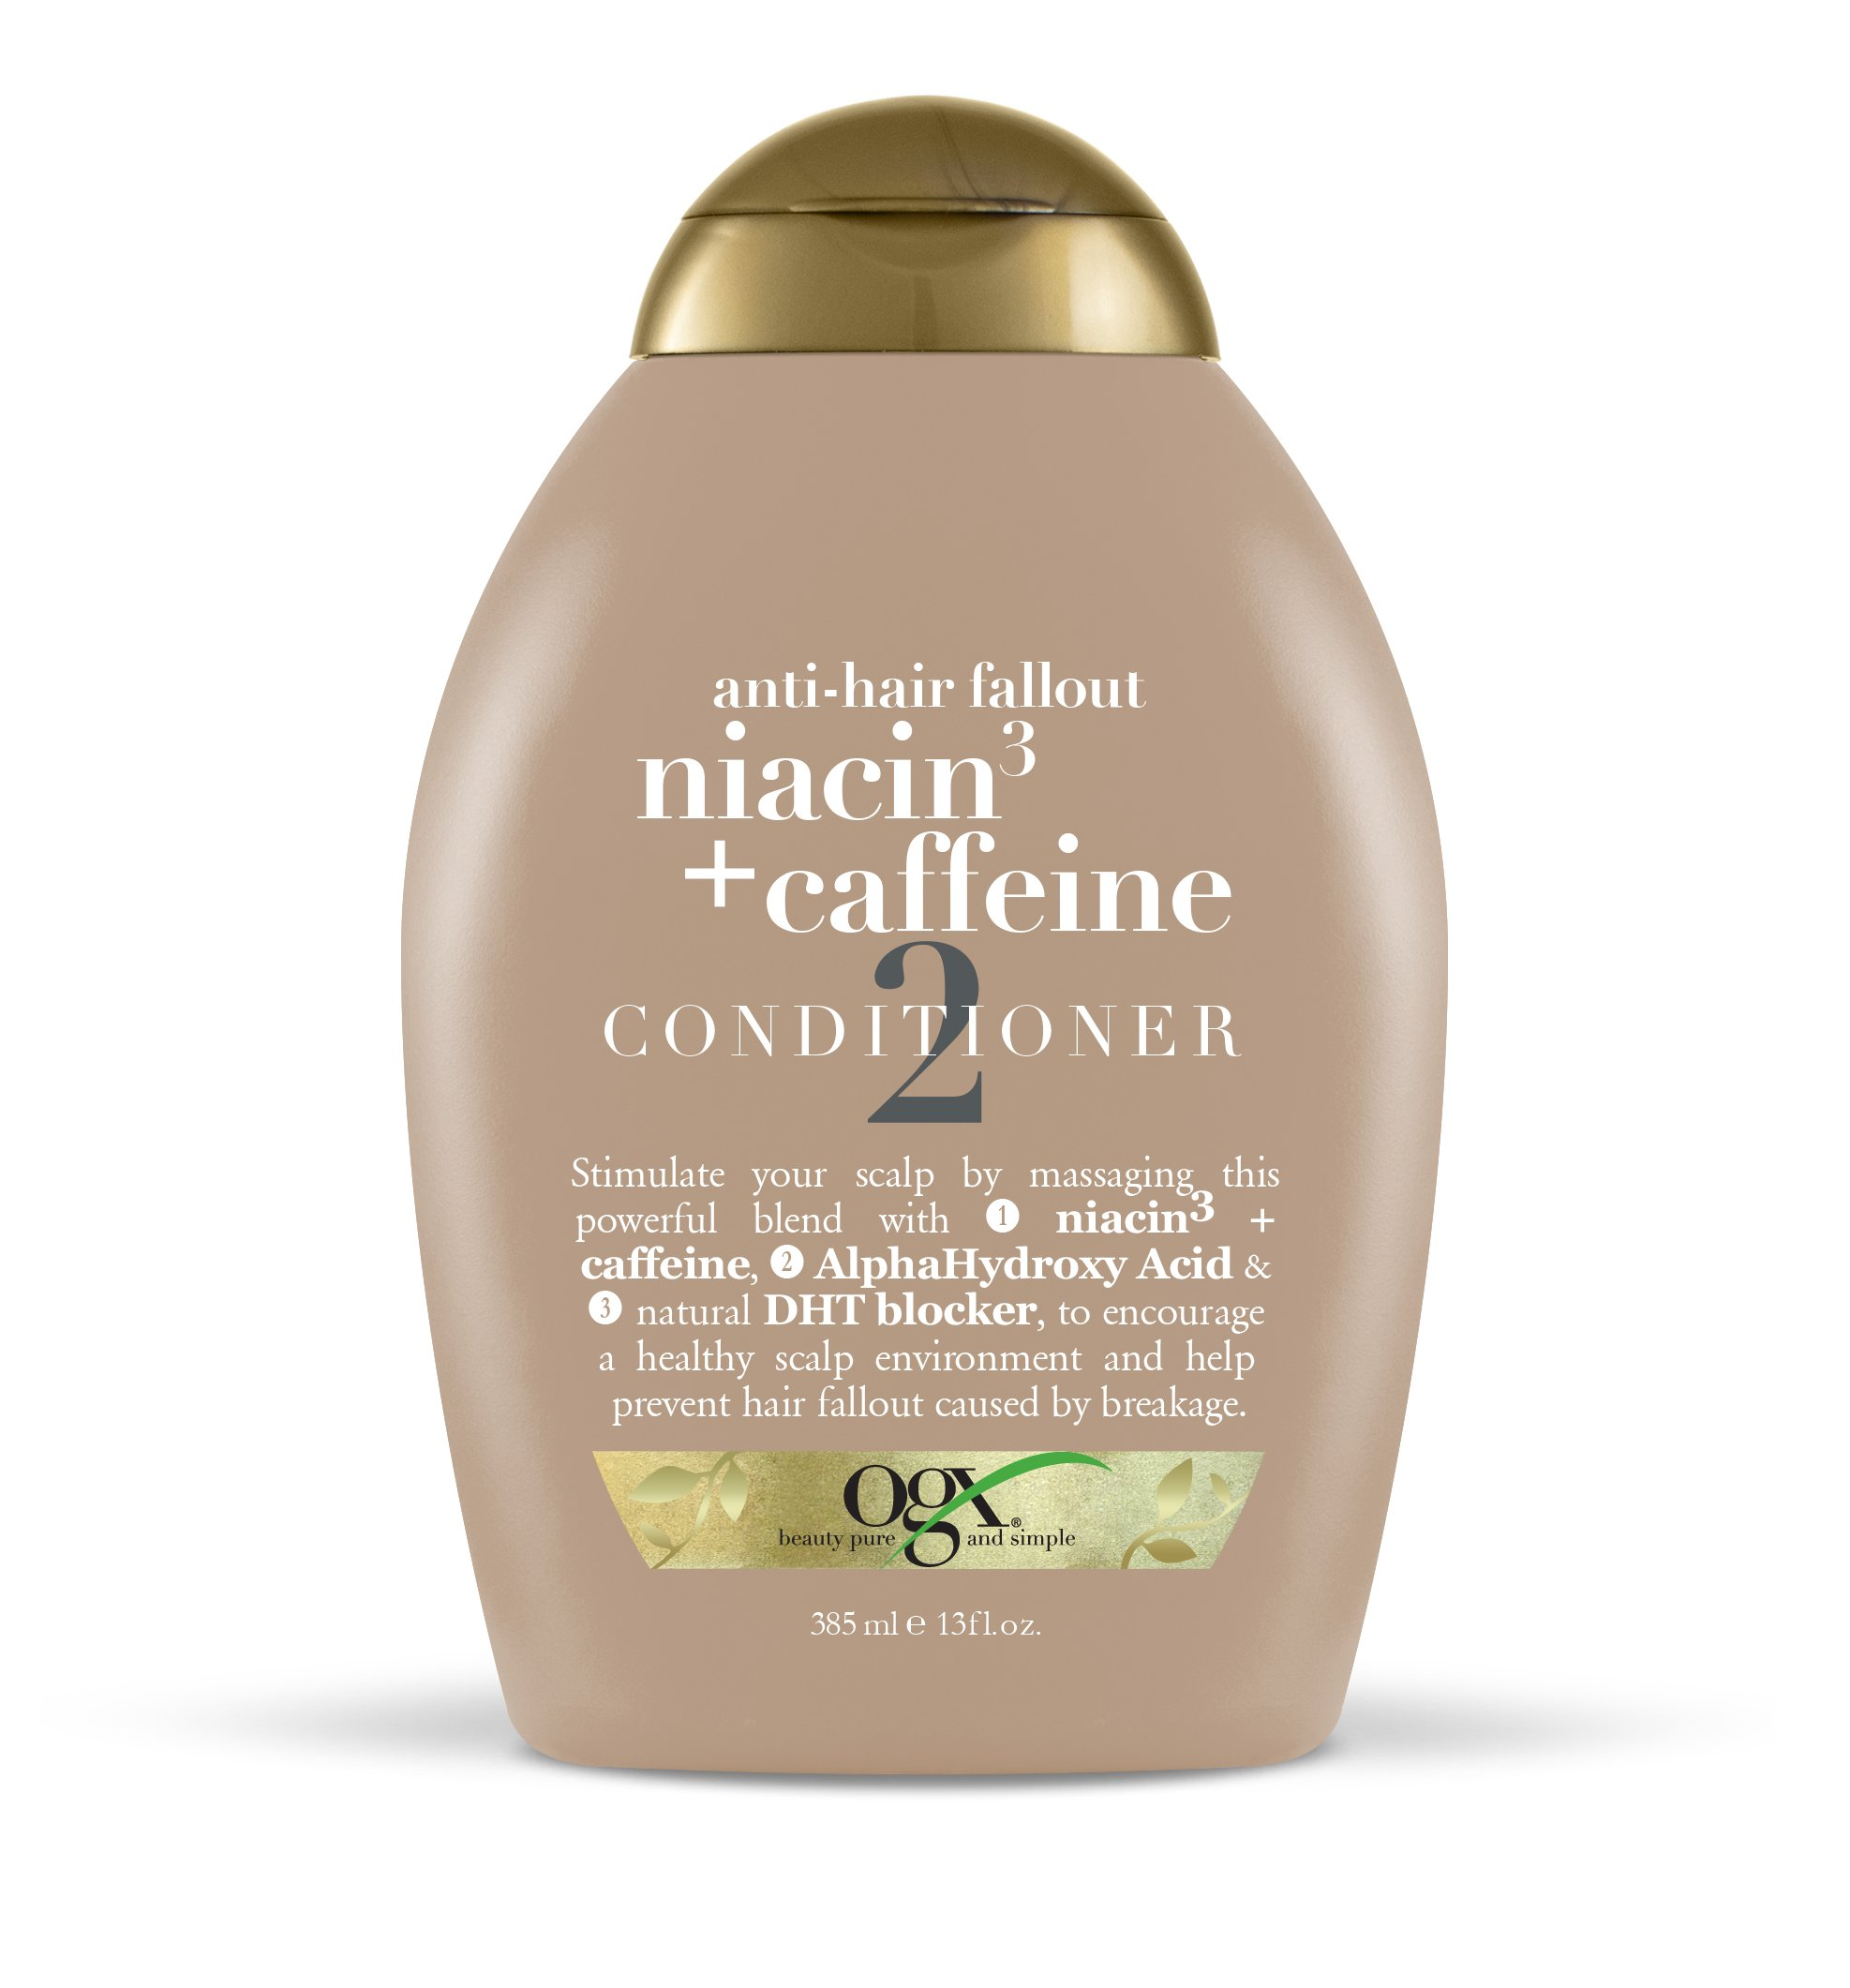 OGX Conditioner Anti-Hair Fallout Niacin + Caffeine Conditioner 13oz, Simulate Your Scalp; Massage This Powerful Blend with Natural DHT Blockers; Encourage Healthy Scalp Environment